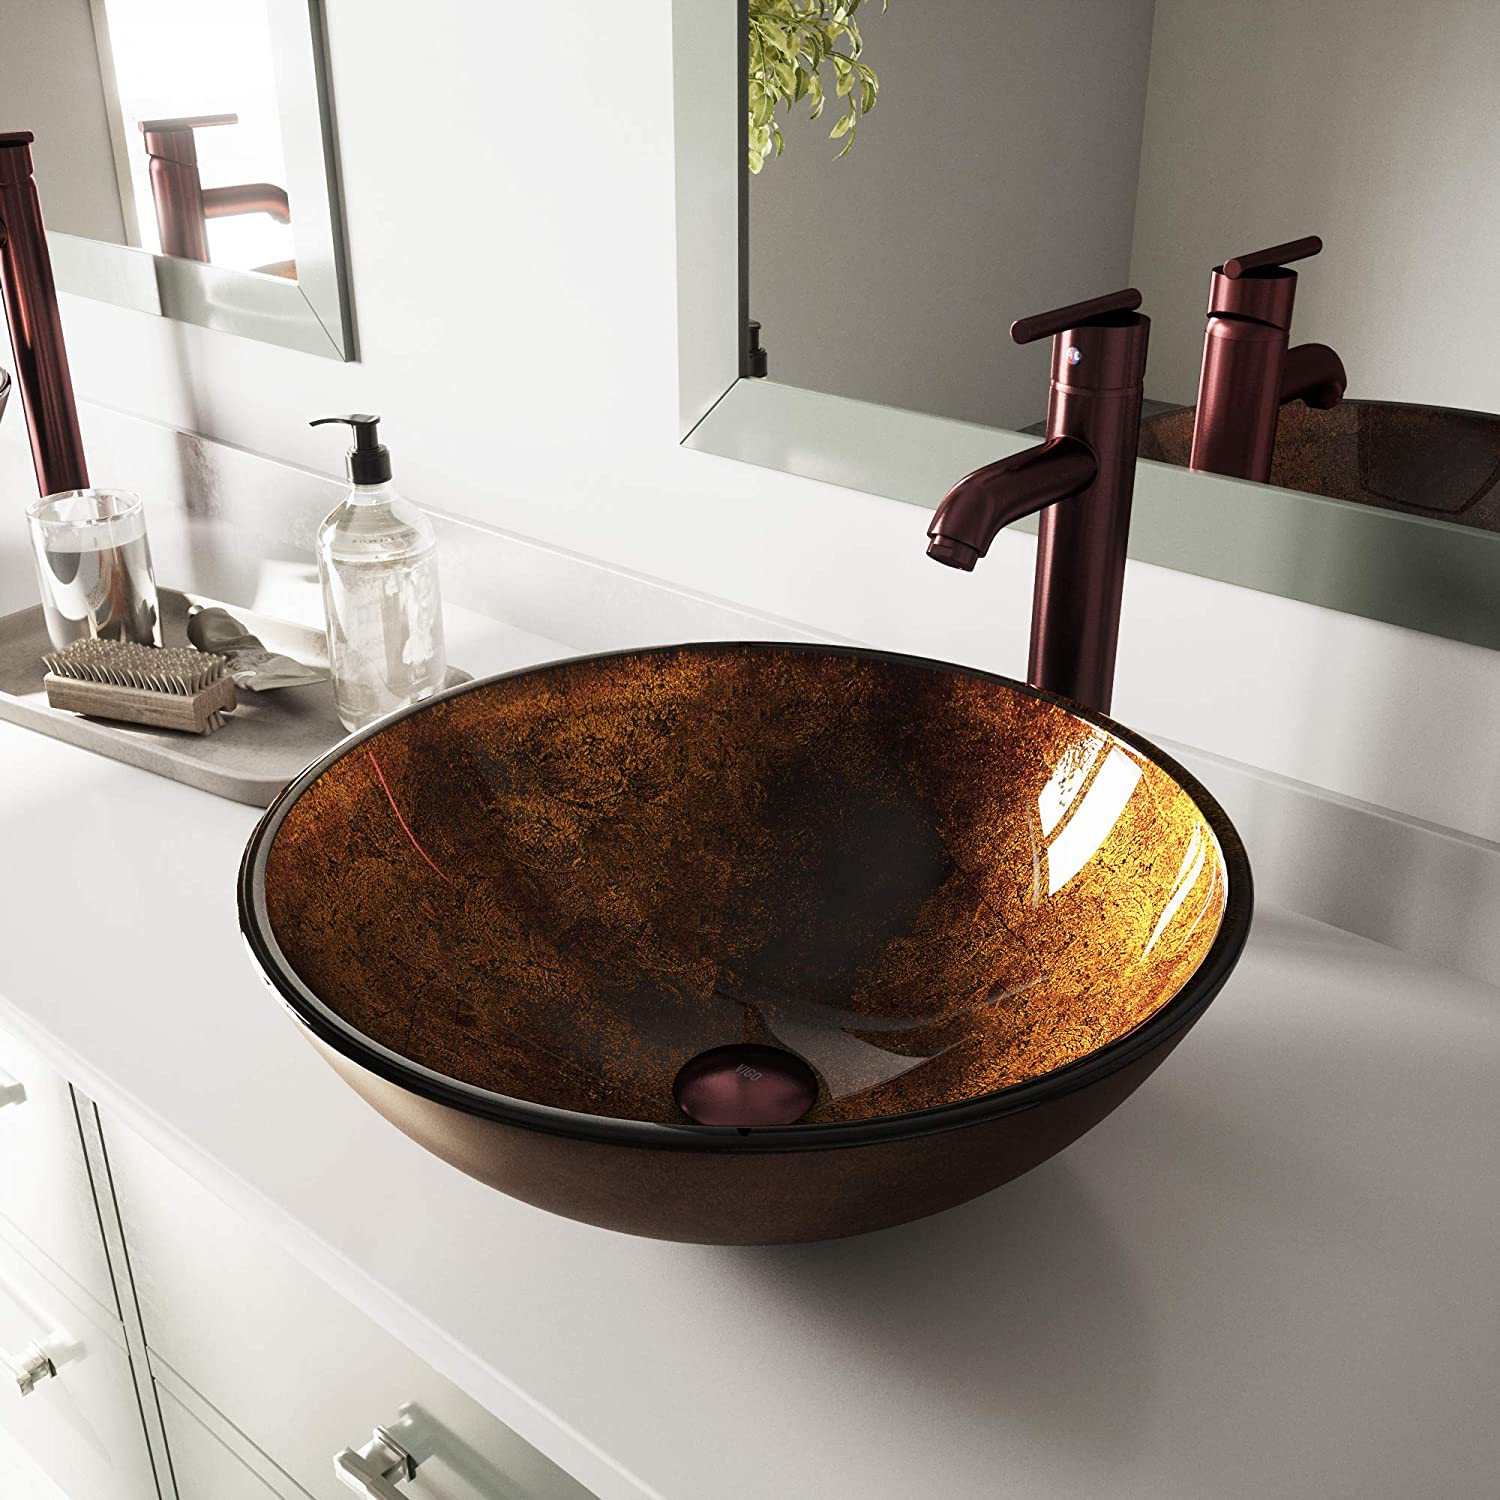 VIGO Russet Glass Vessel Bathroom Sink and Seville Vessel Faucet with Pop Up, Oil Rubbed Bronze